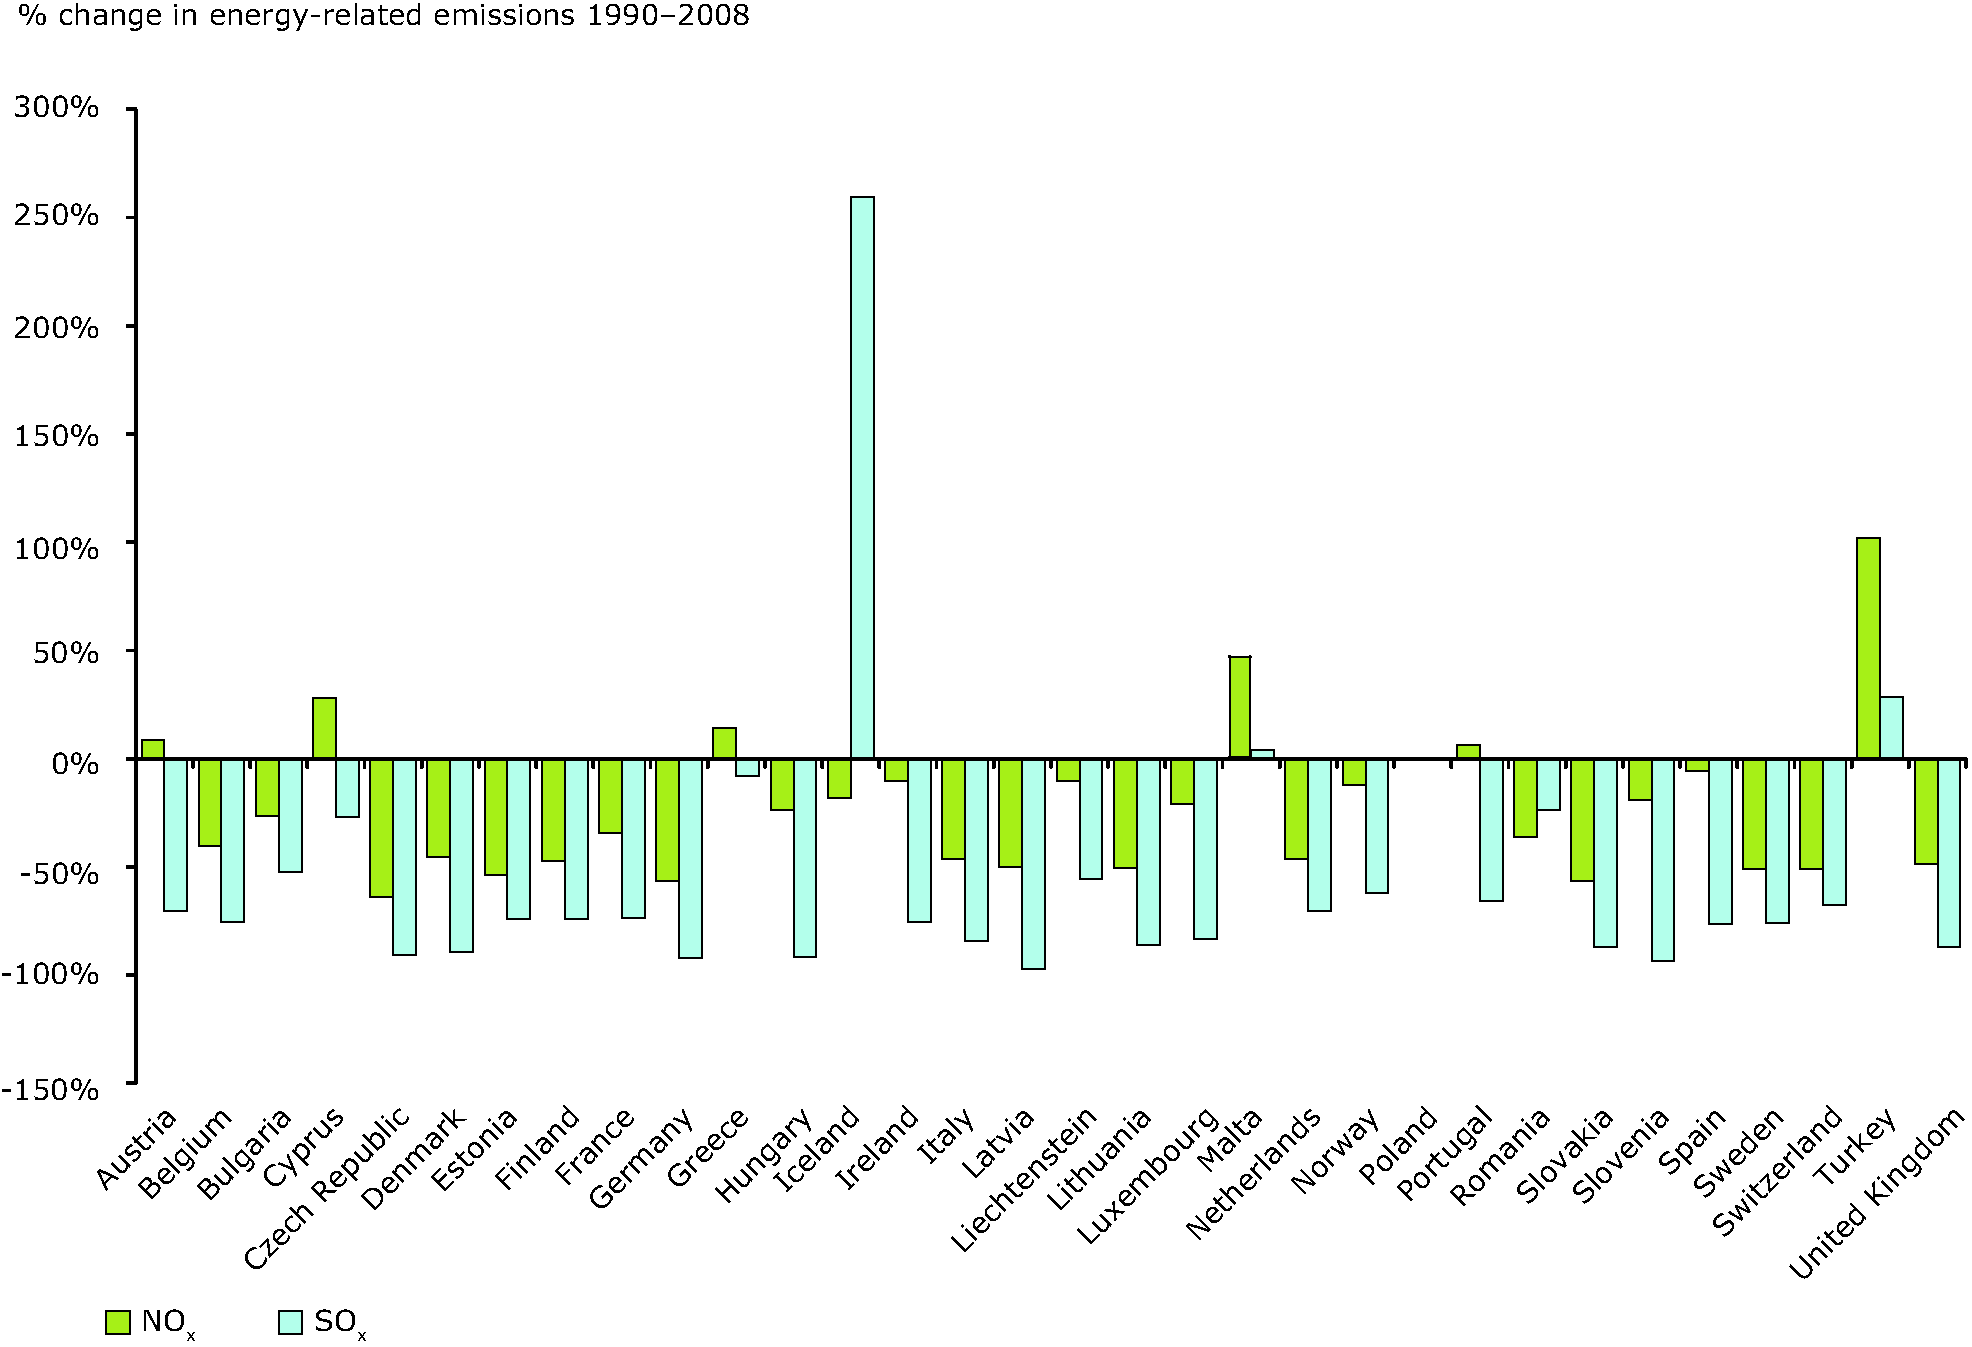 Overall change in energy related emissions of SO2 and NOx by country, 1990-2008